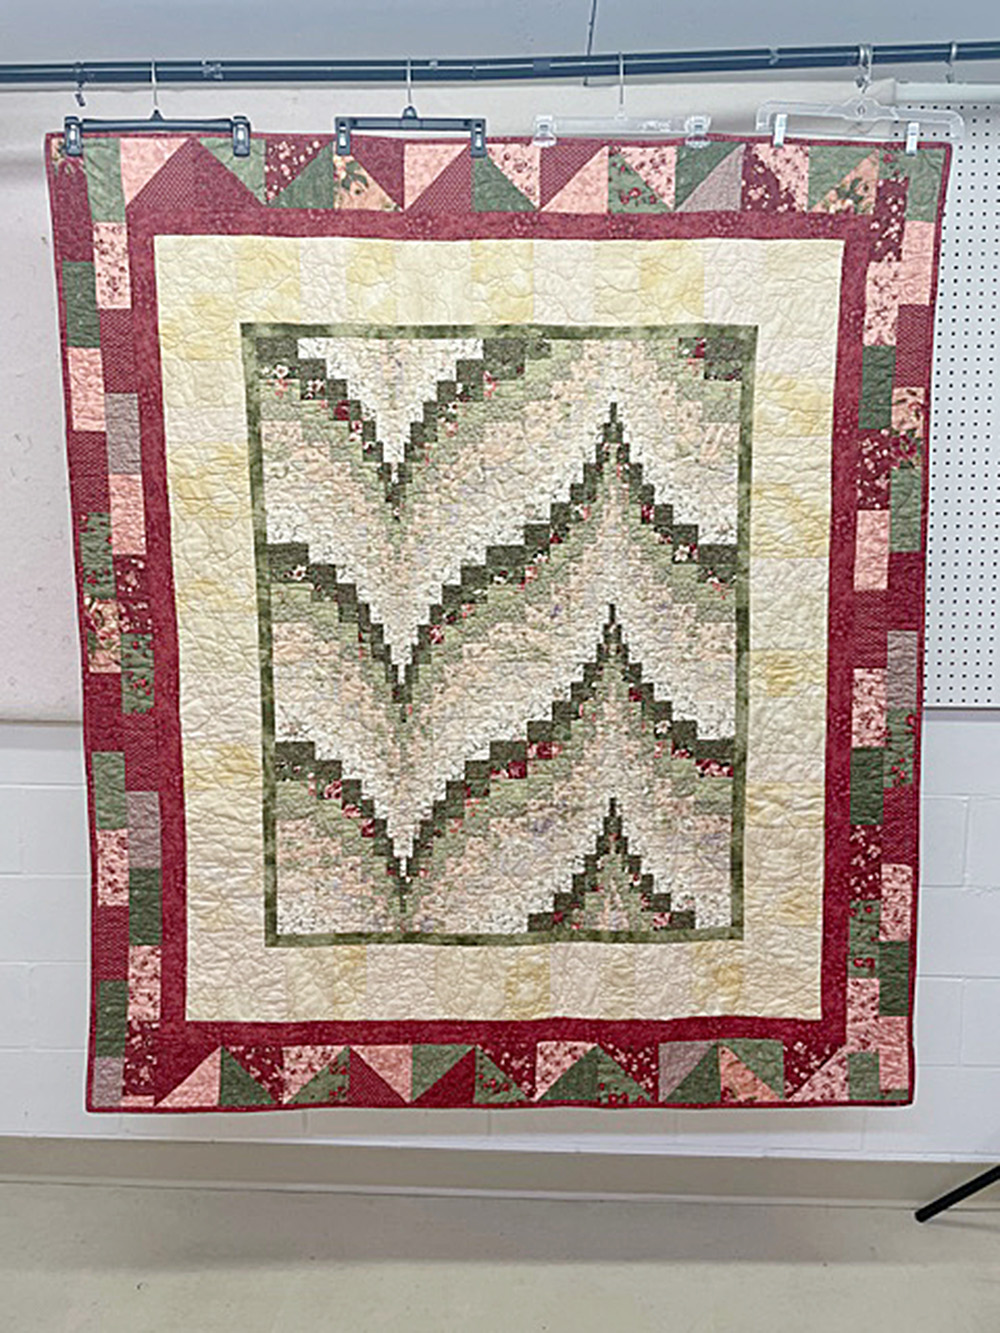 Patchwork Pals to display 'All Things Fiber' at CCAC in October